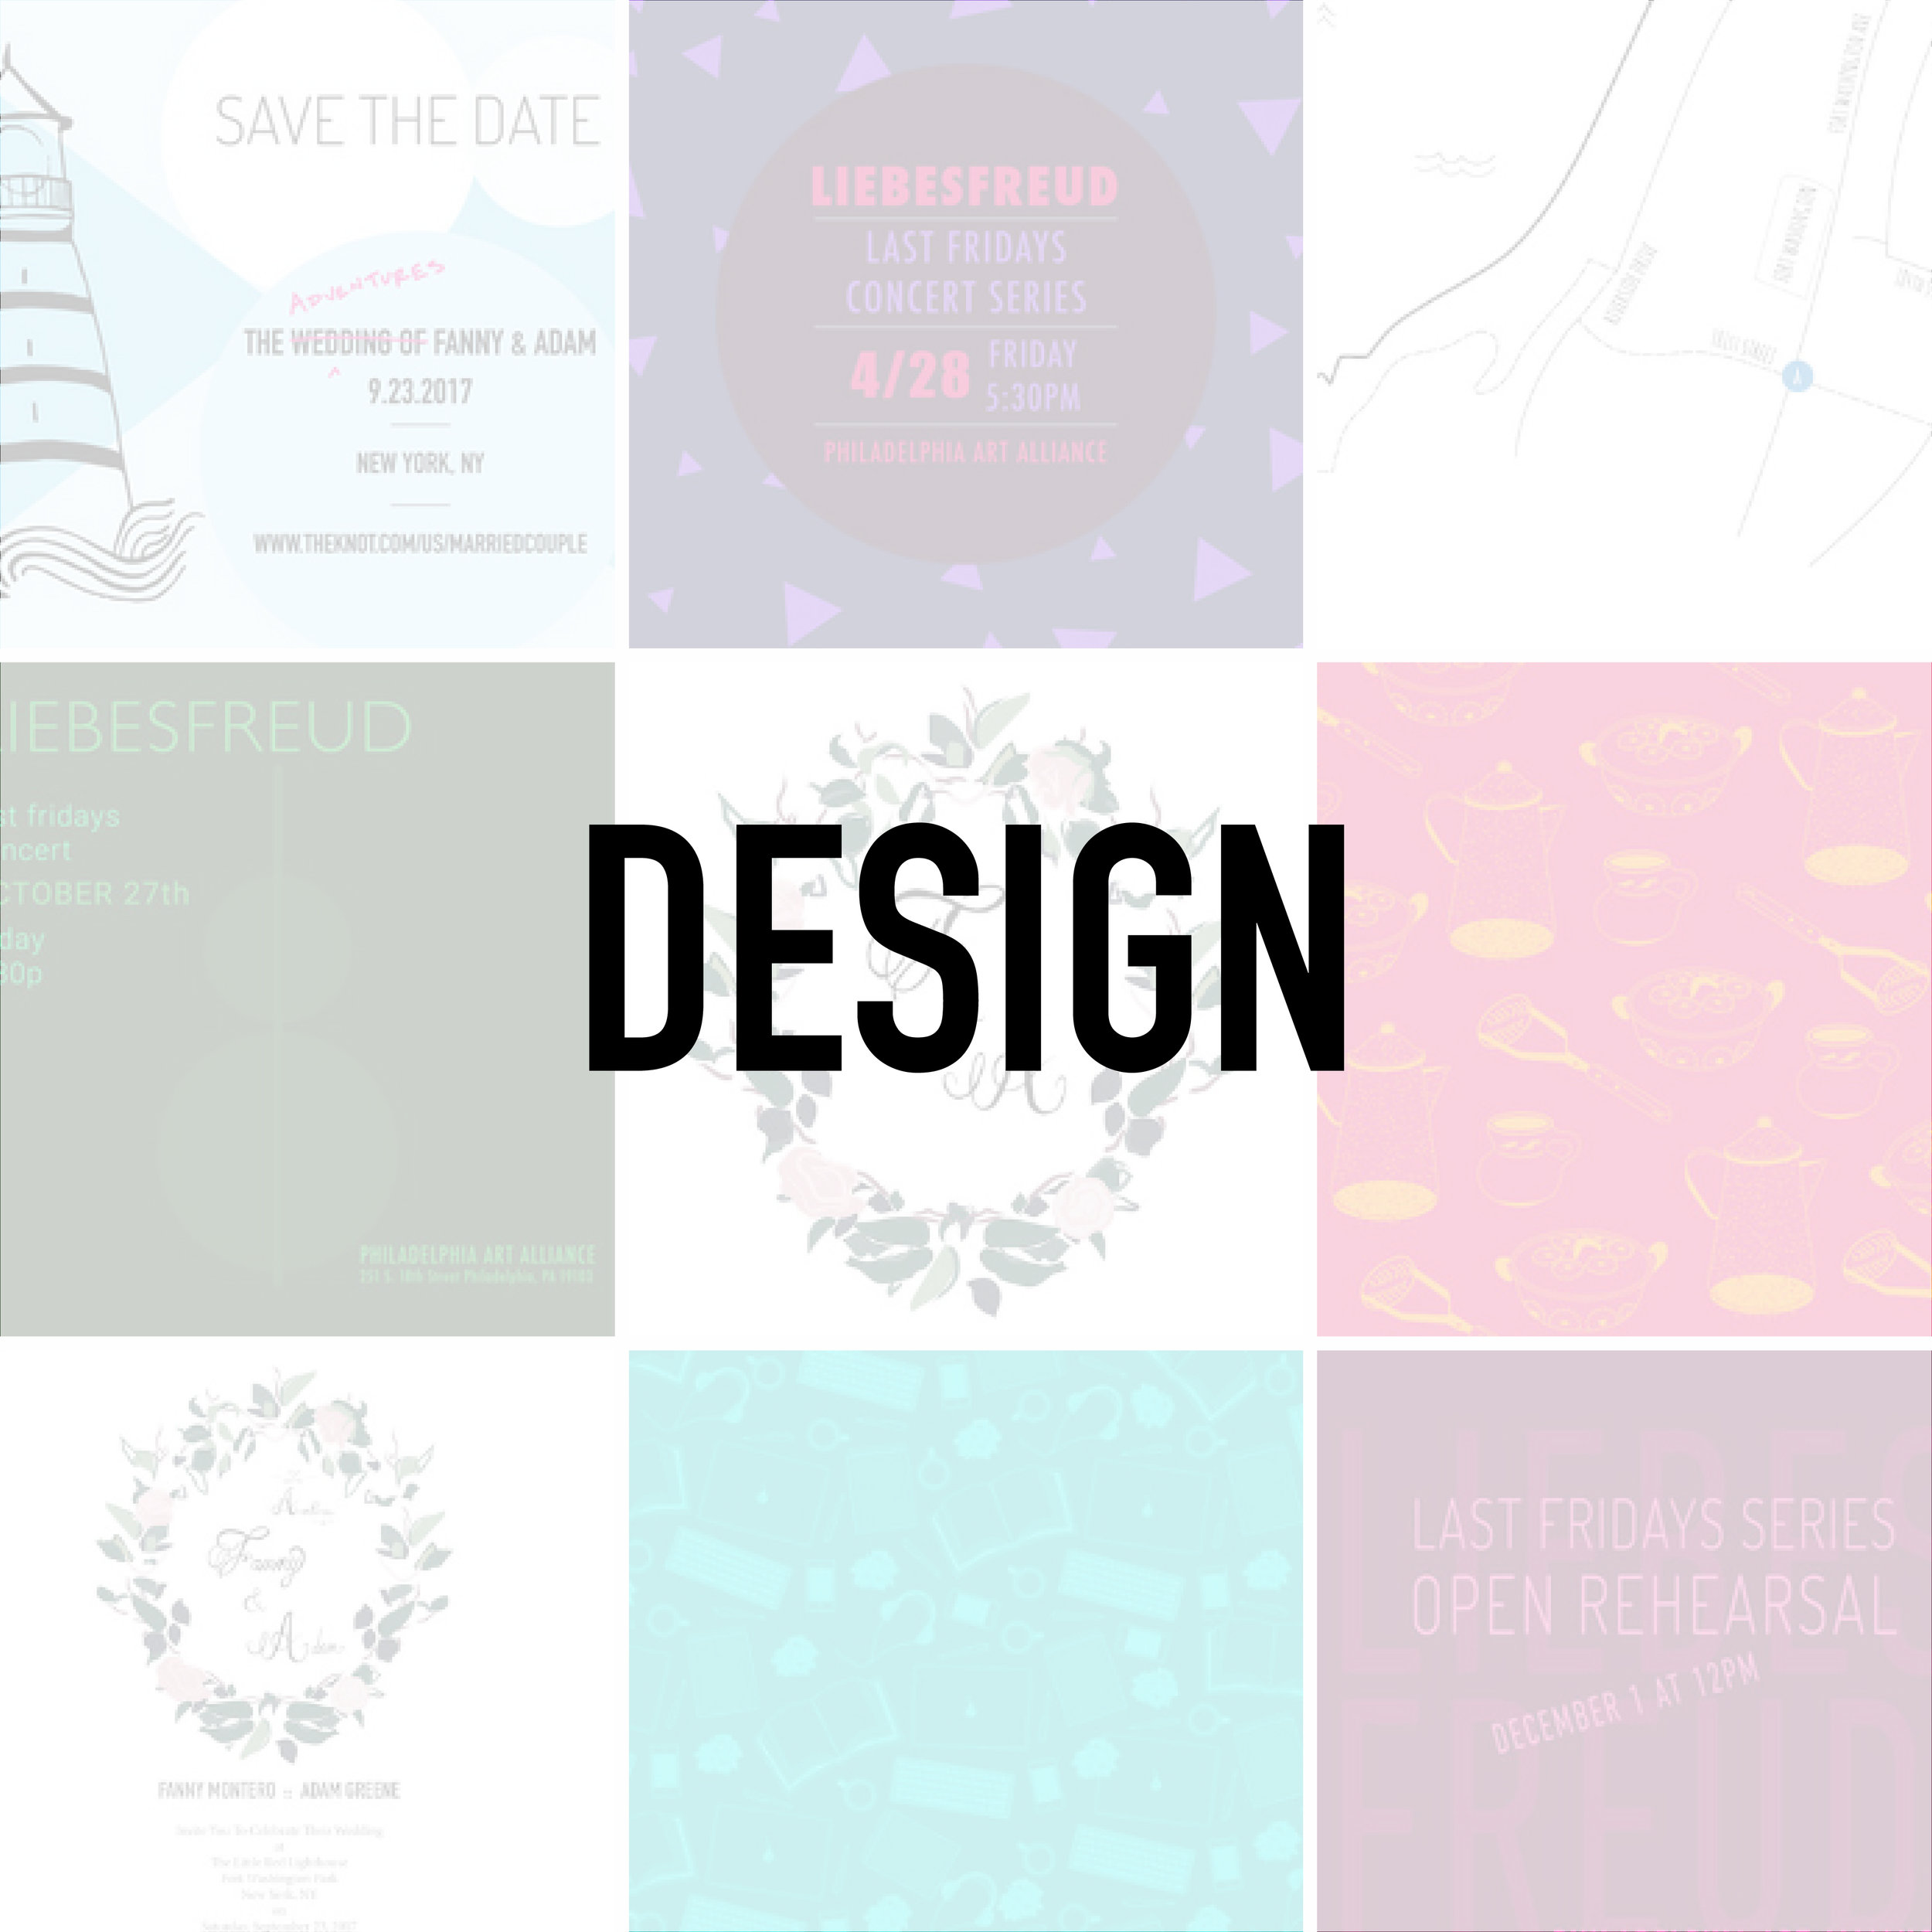 design-page-thumbnail-w-text-01.jpg